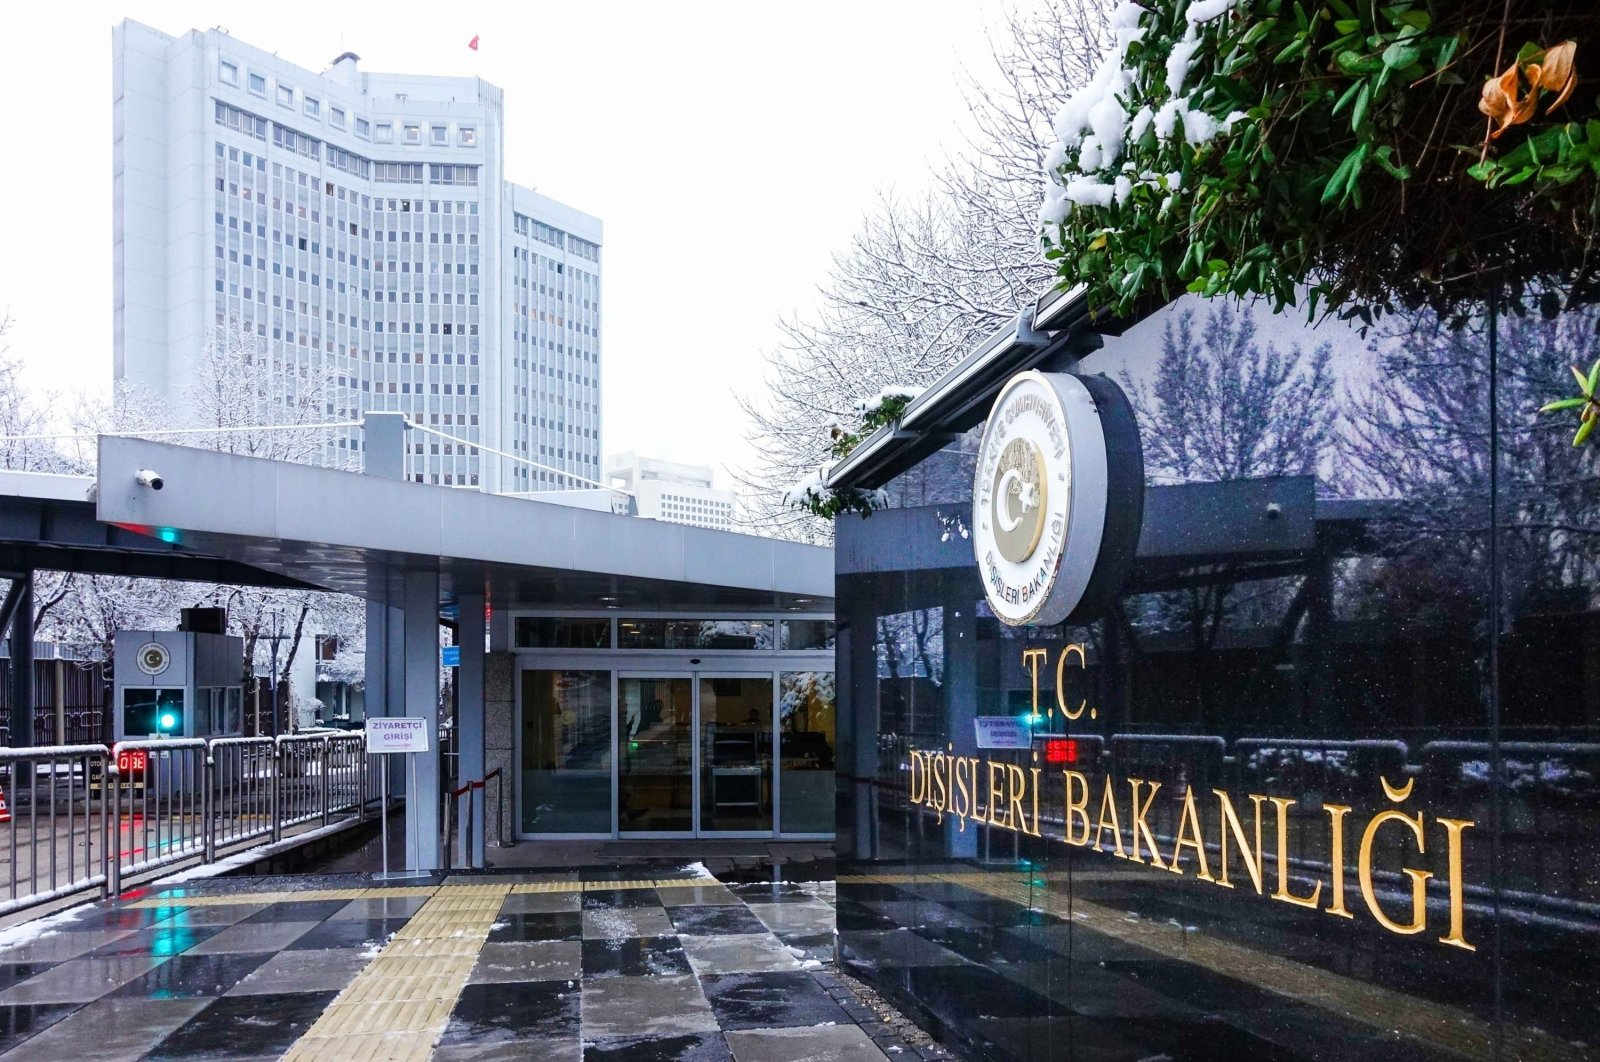 Ministry of Foreign Affairs headquarters in Turkey's capital Ankara. (File Photo)